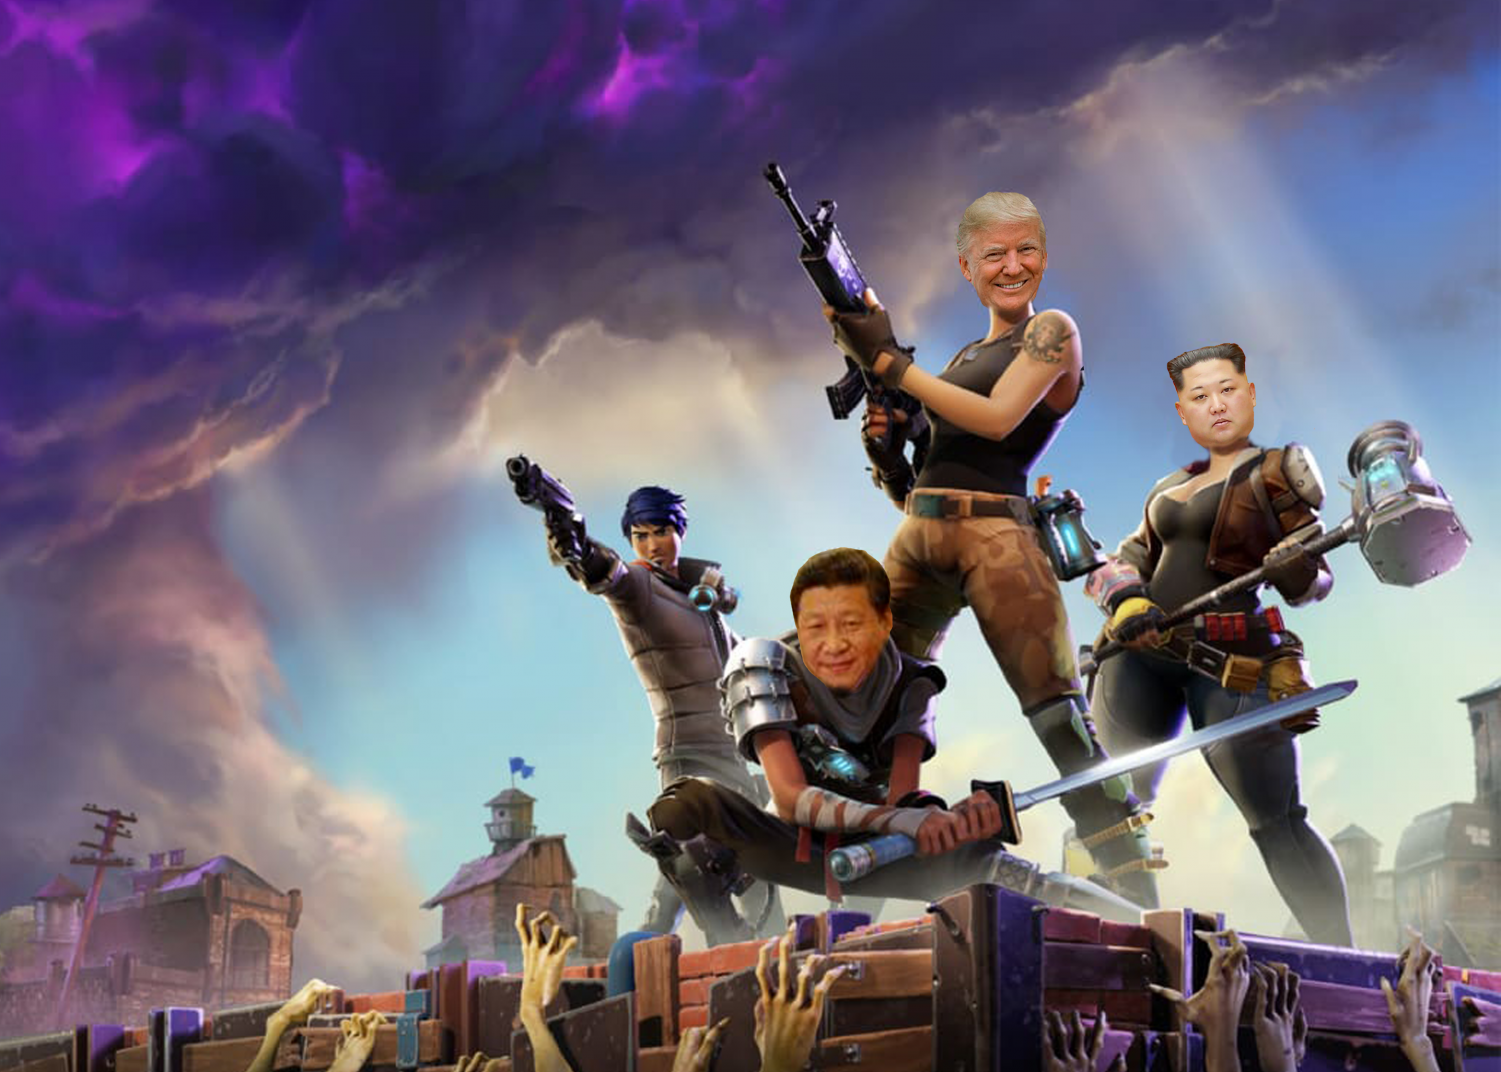 Donald Trump Twitter Fortnite Trump Invites Leaders Of China And North Korea To Play Squads On Fortnite The Bucknellian